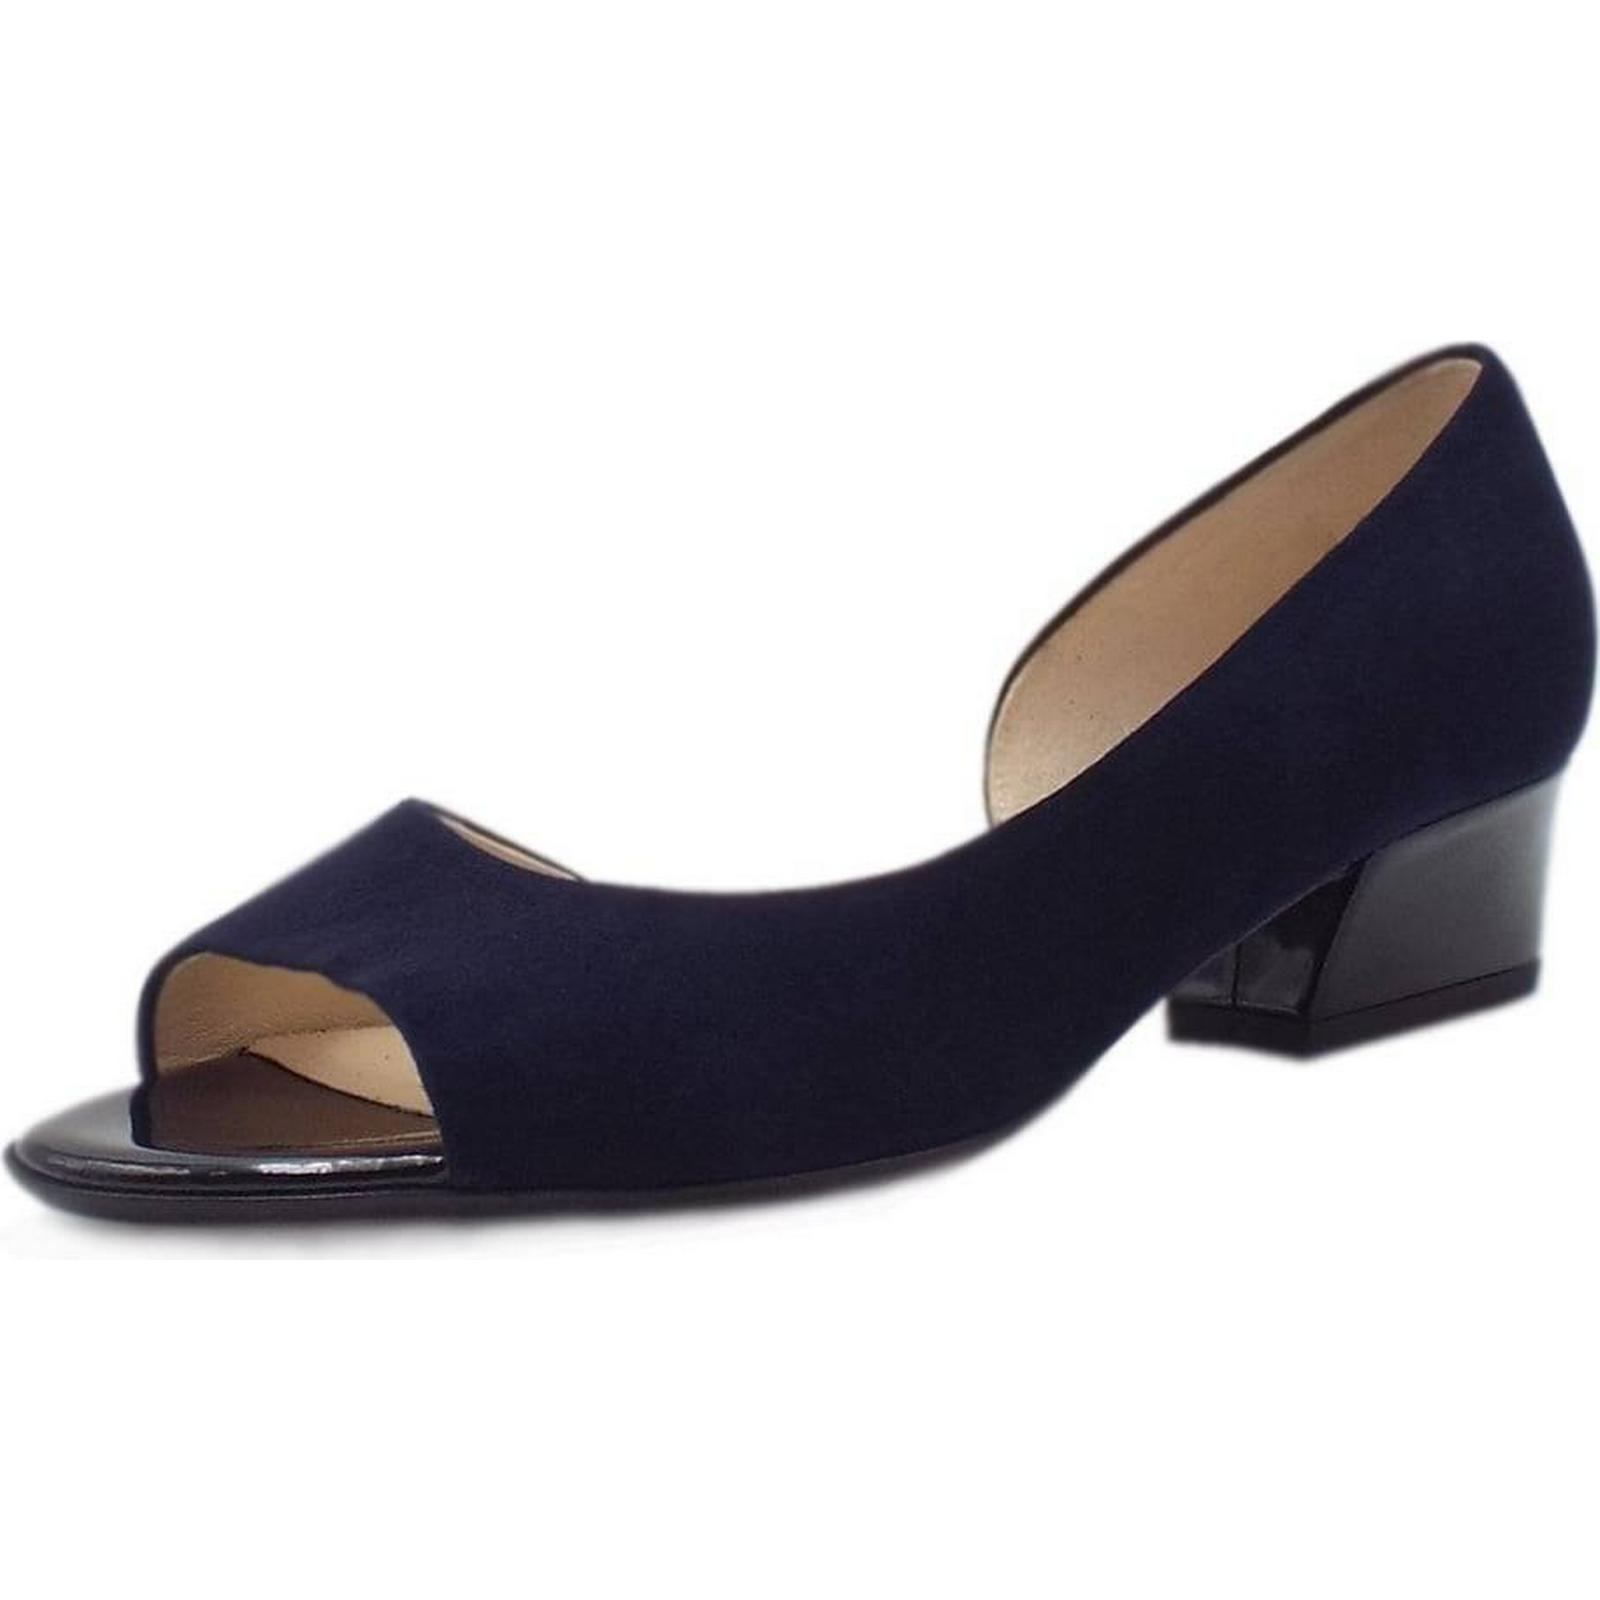 Peter Kaiser Size: PURA 35MM OPEN SIDE OPEN TOE SHOE Size: Kaiser 4, Colour: NOTTE cbbbe6